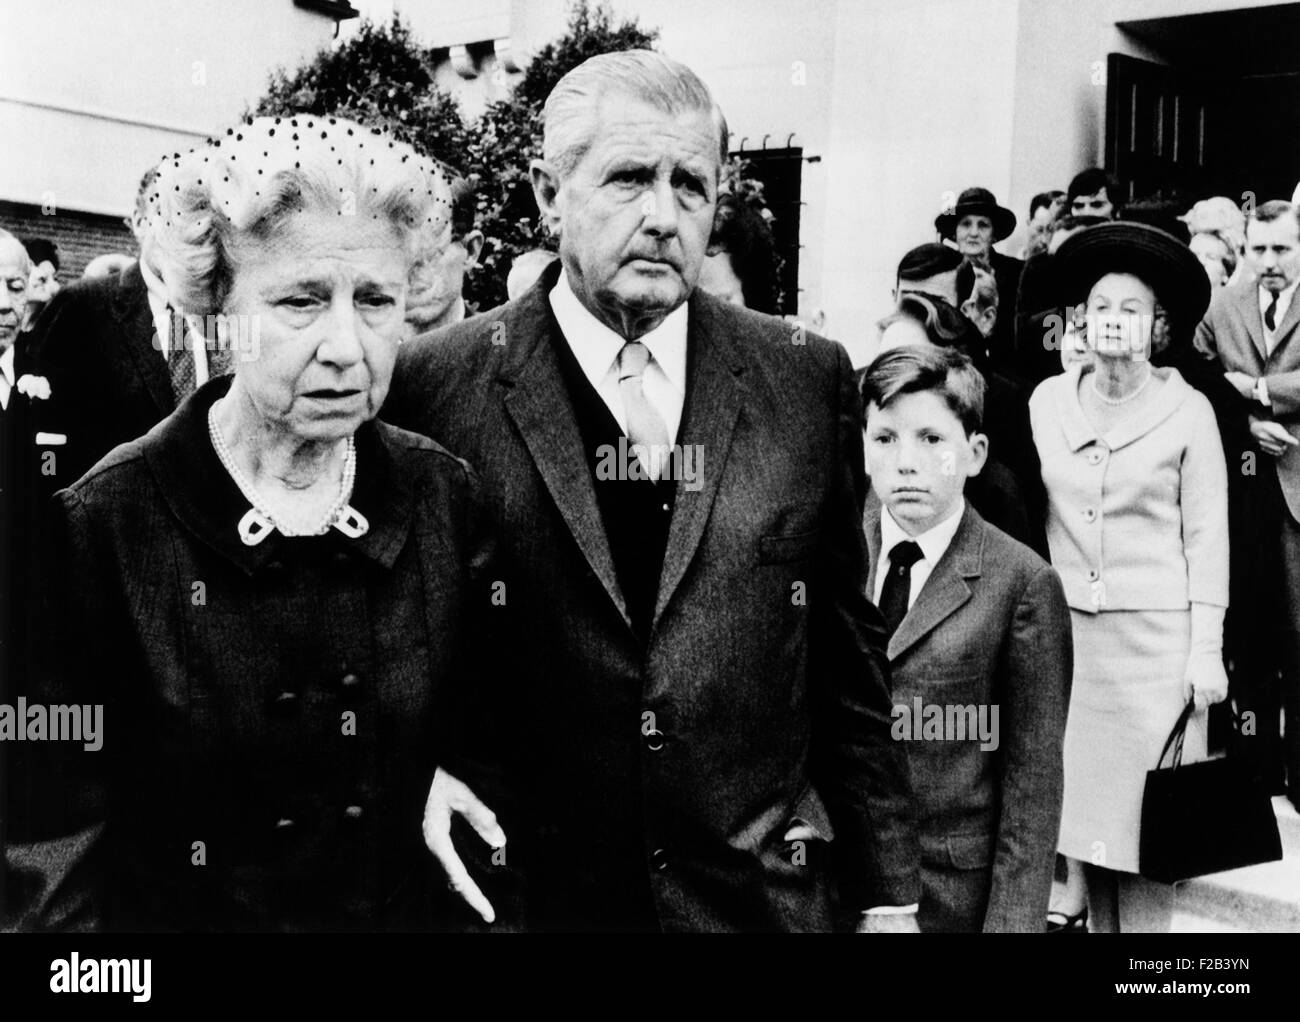 Spencer Tracy's widow, Louise, leaving Requiem Mass for her estranged husband. She is escorted by MGM Executive - Stock Image